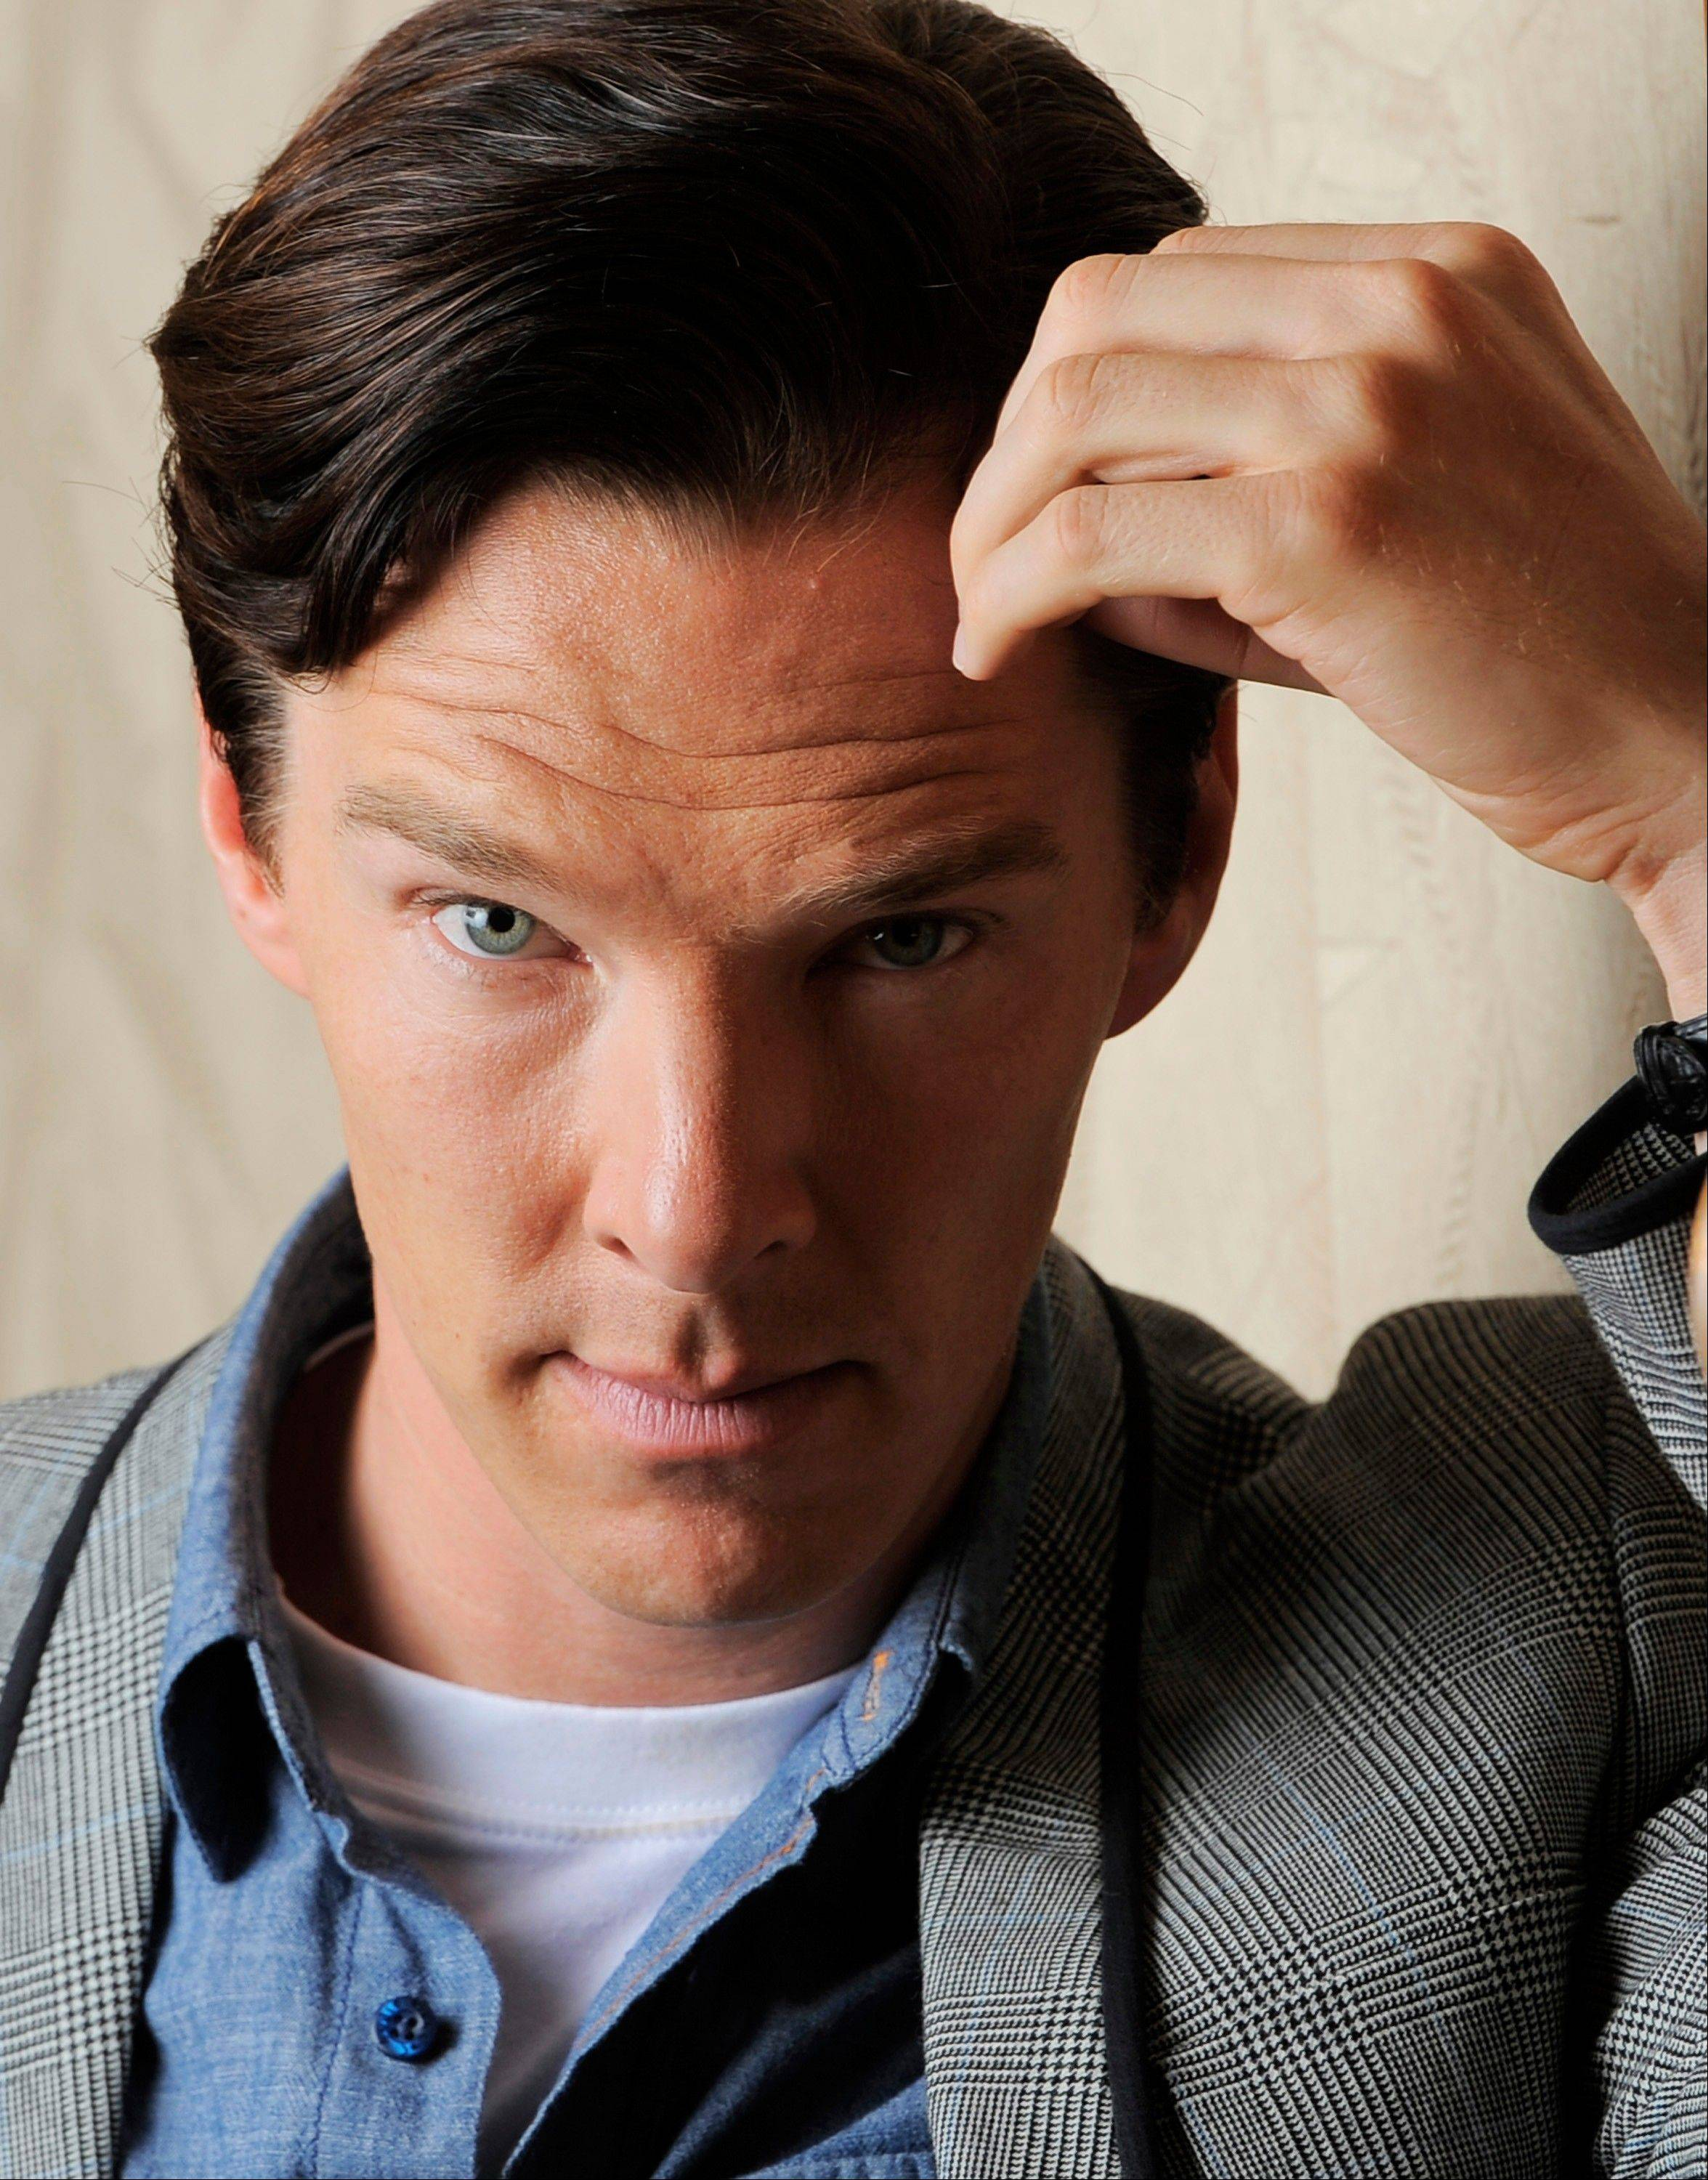 Actor Benedict Cumberbatch stars as WikiLeaks founder Julian Assange in�The Fifth Estate,� in theaters on Oct. 18.